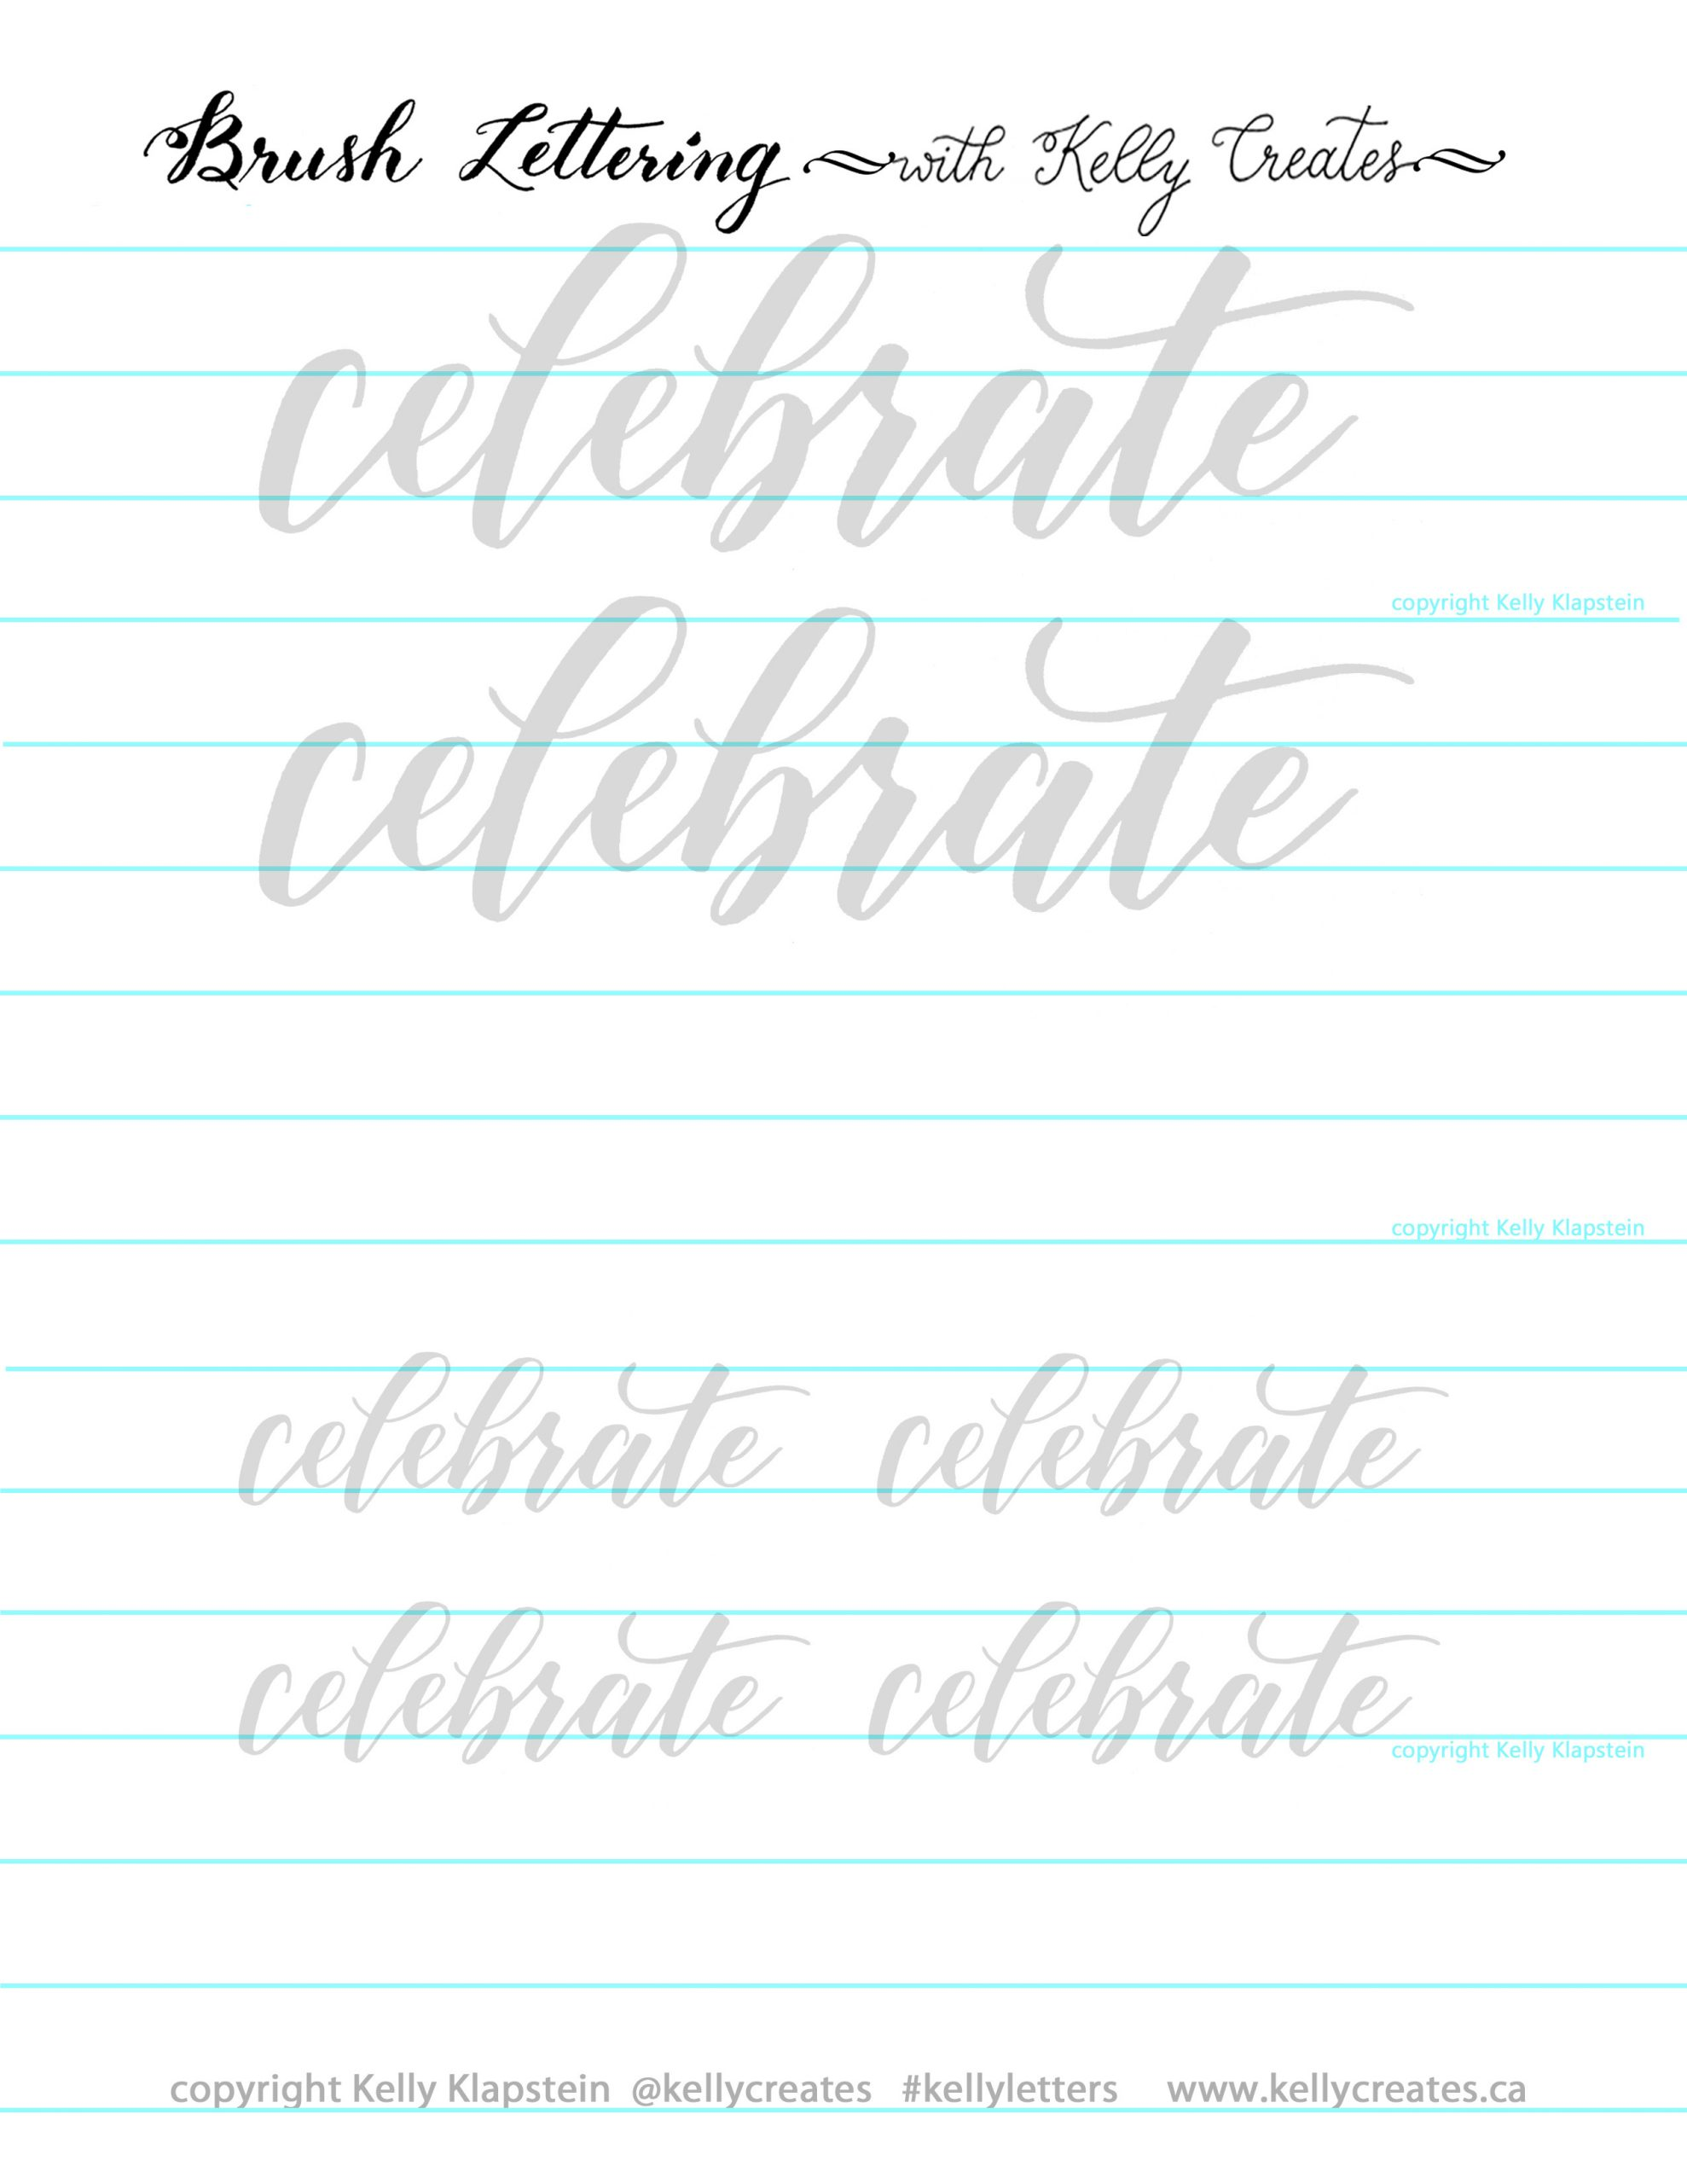 Free Calligraphy Worksheets Printable Let S Celebrate with A Free Worksheet – Kelly Creates